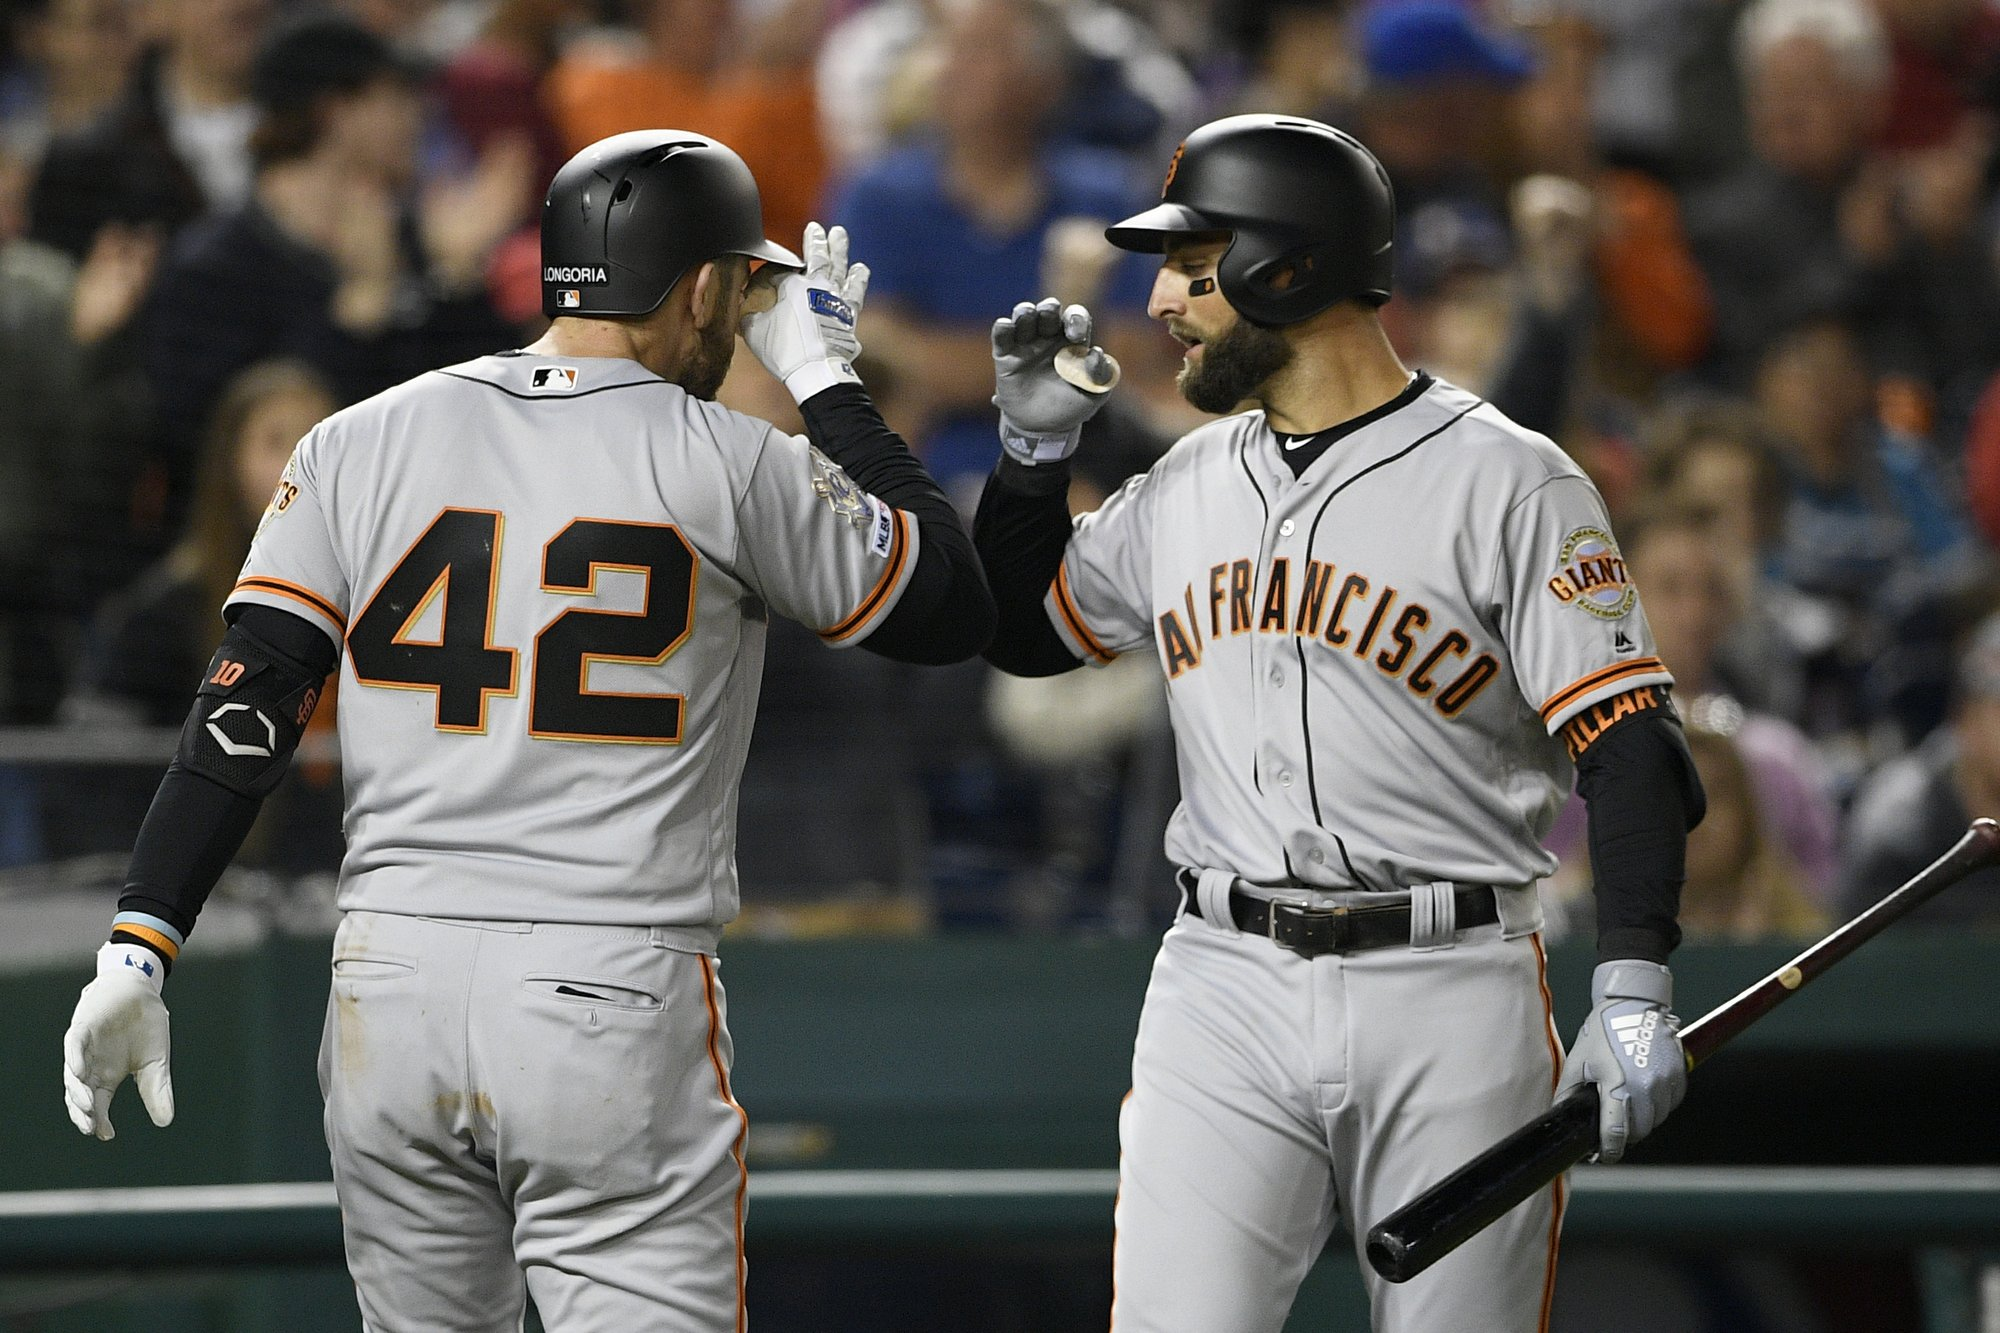 Giants break out with 3 HRs off Strasburg in 7-3 win at Nats